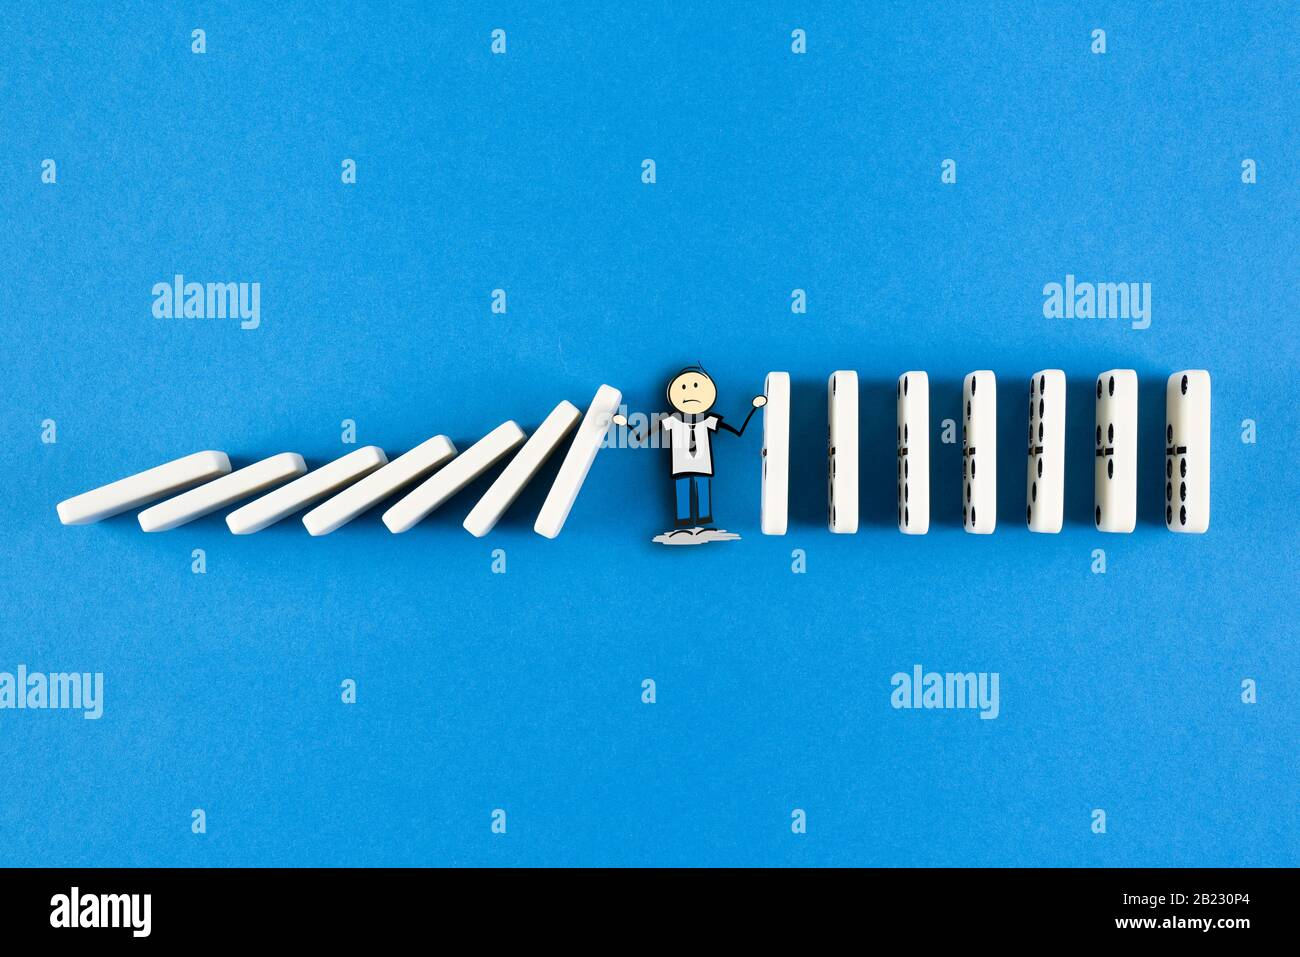 stickman figure preventing line of domino tiles from falling, domino effect and event chain concept Stock Photo